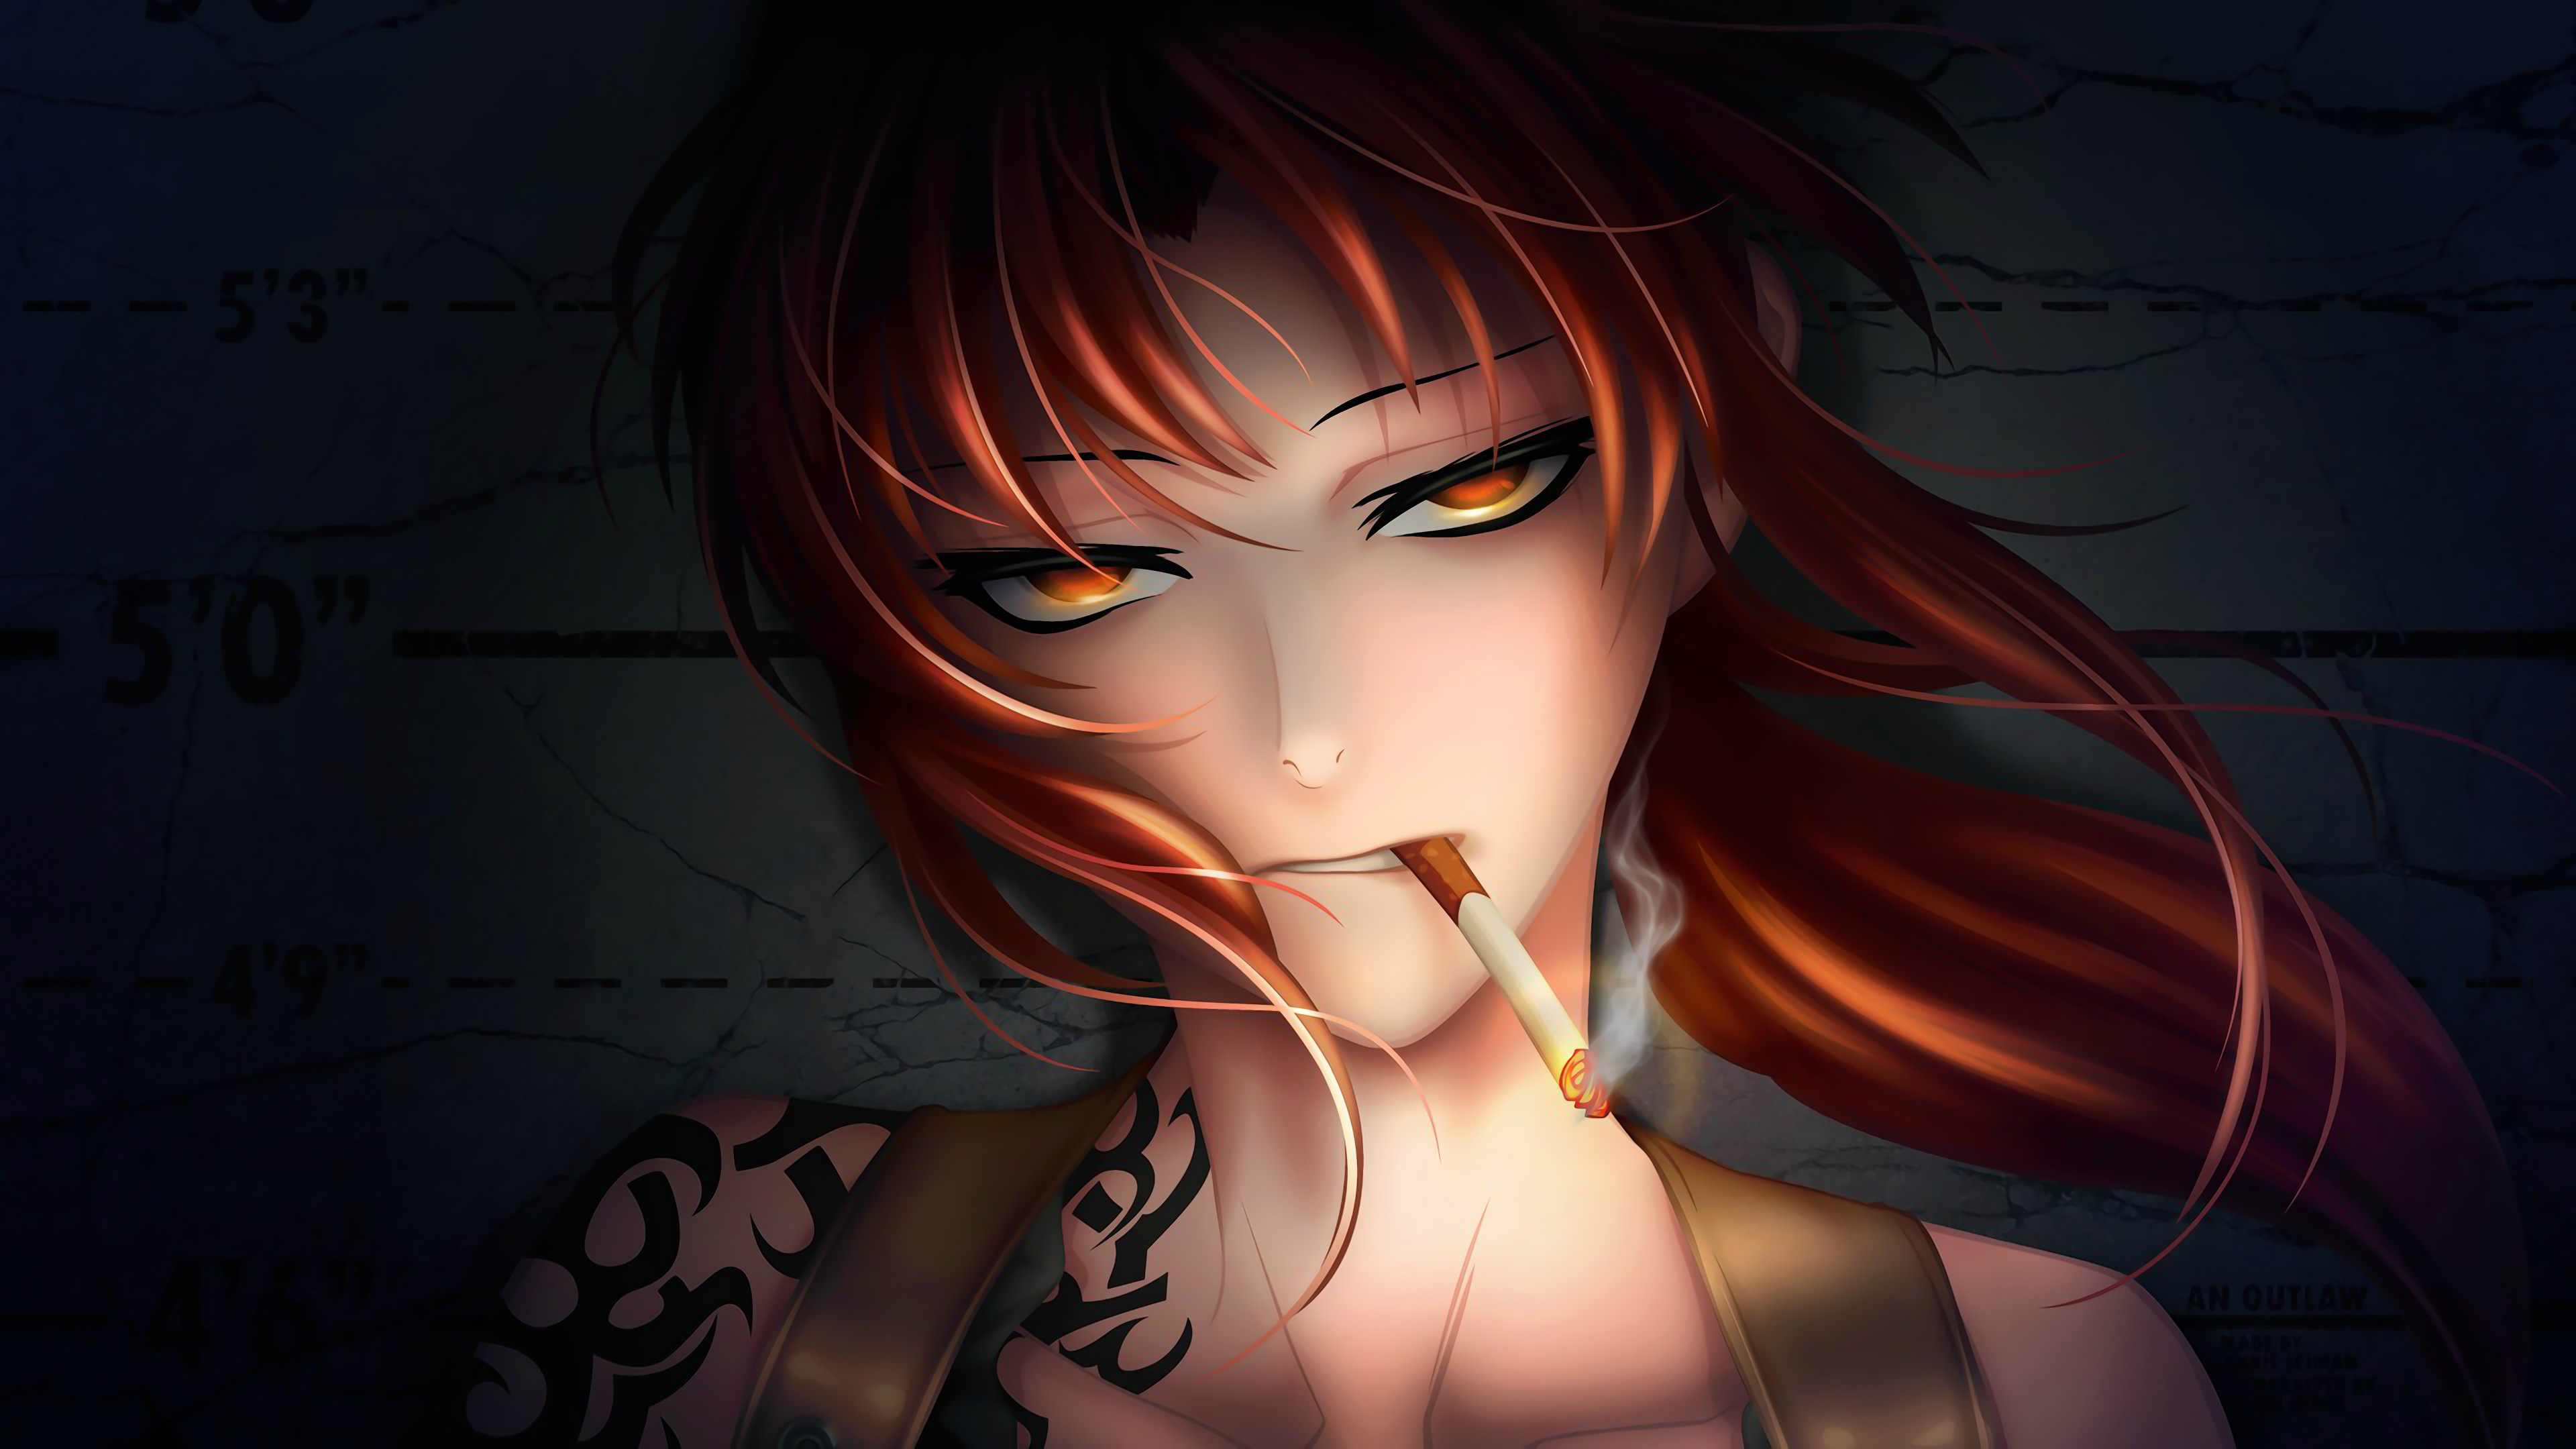 1125x2436 Black Lagoon Revy Anime 4k Iphone Xs Iphone 10 Iphone X Hd 4k Wallpapers Images Backgrounds Photos And Pictures